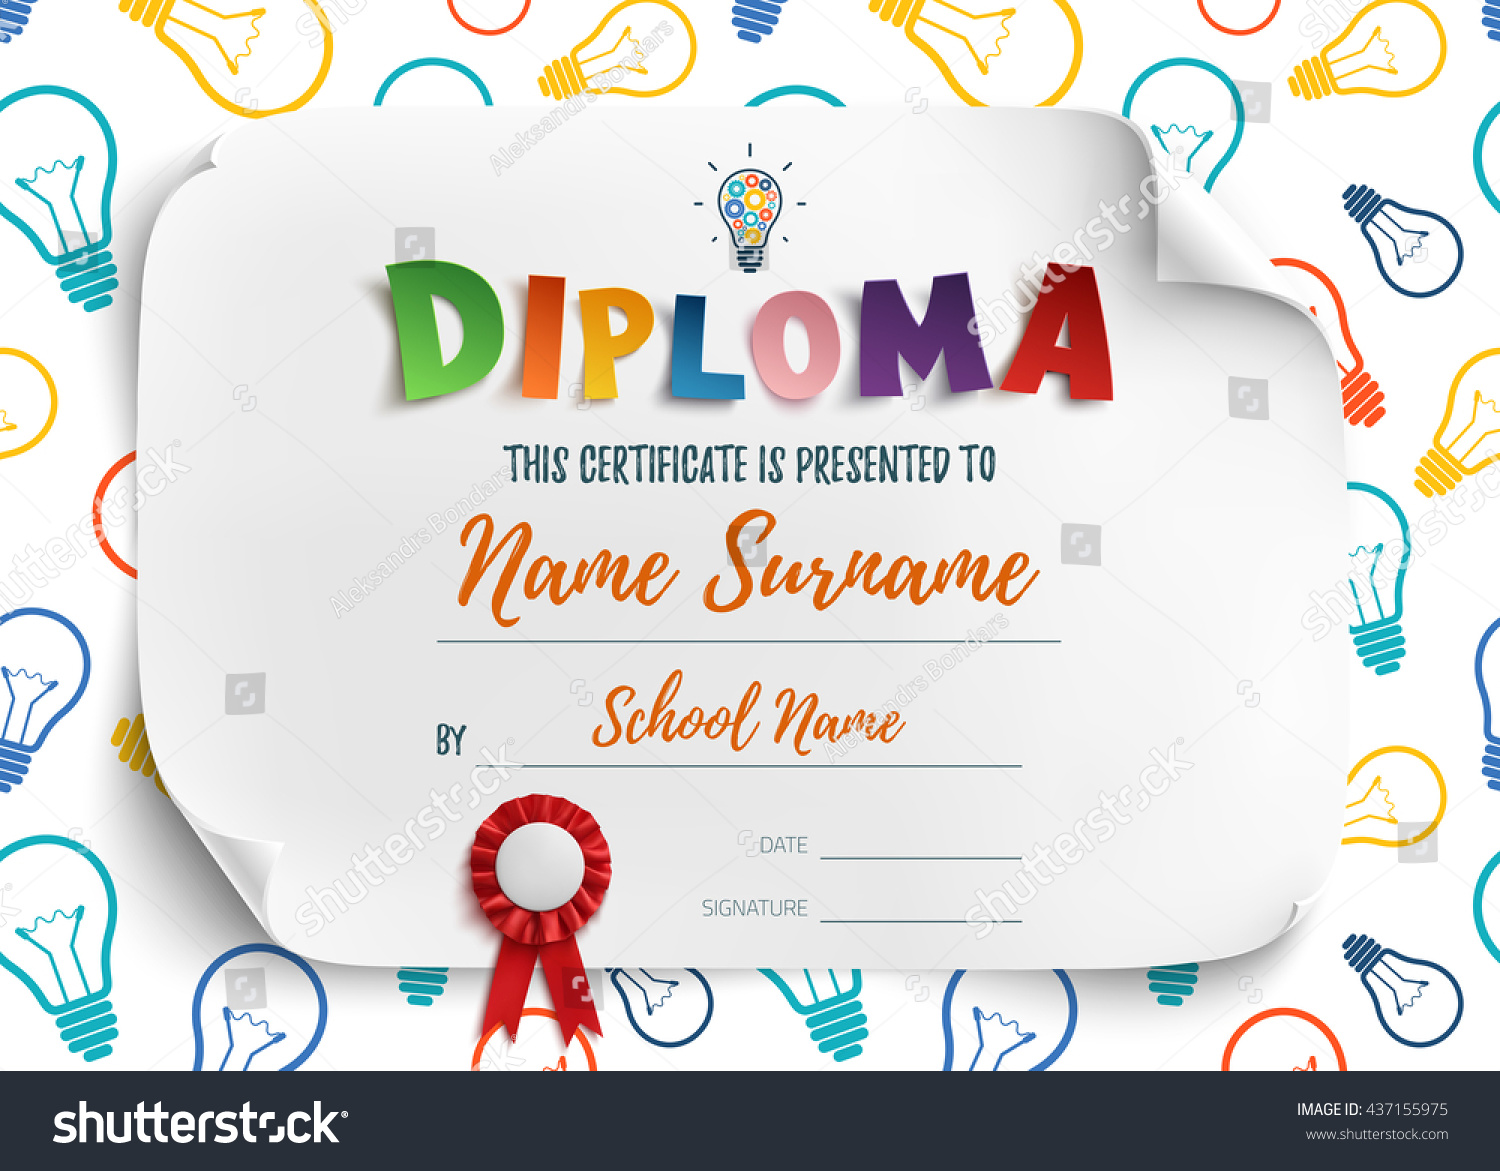 Diploma template kids school preschool playschool stock vector diploma template for kids school preschool playschool certificate background vector illustration yadclub Image collections